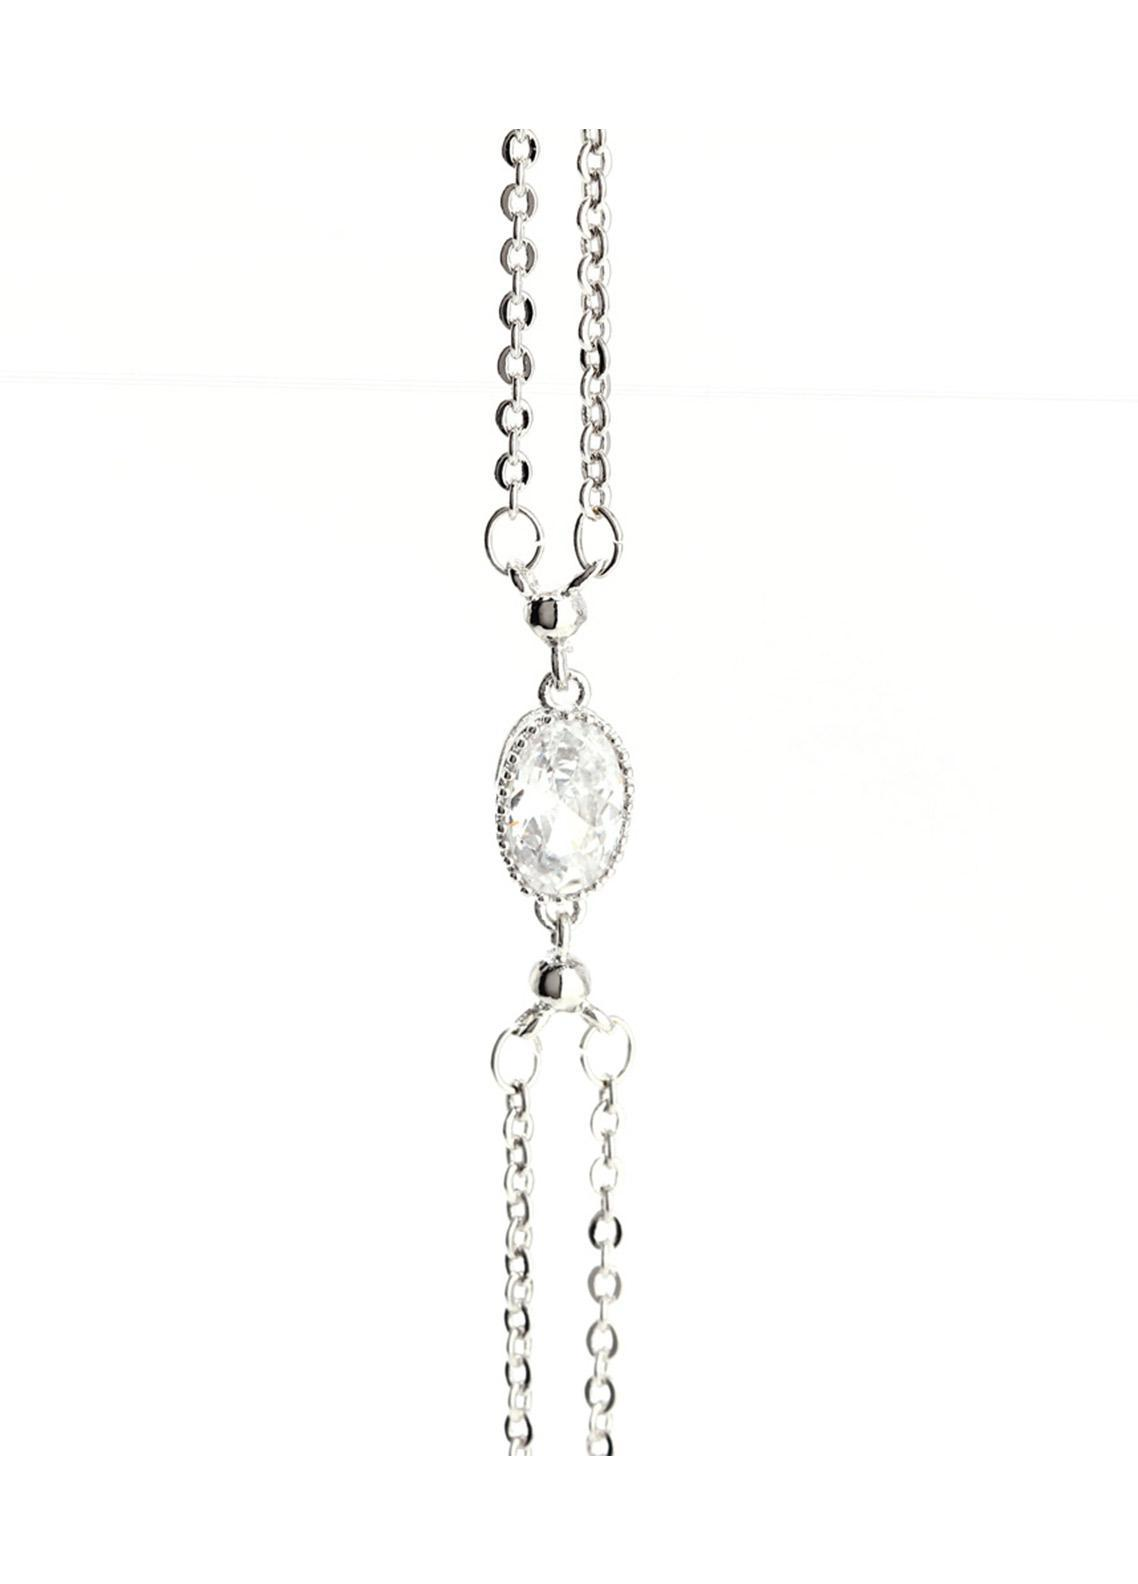 Anna Grace London Silver Crystal Plated Fashion Bracelet AGB0070 - Ladies Jewellery